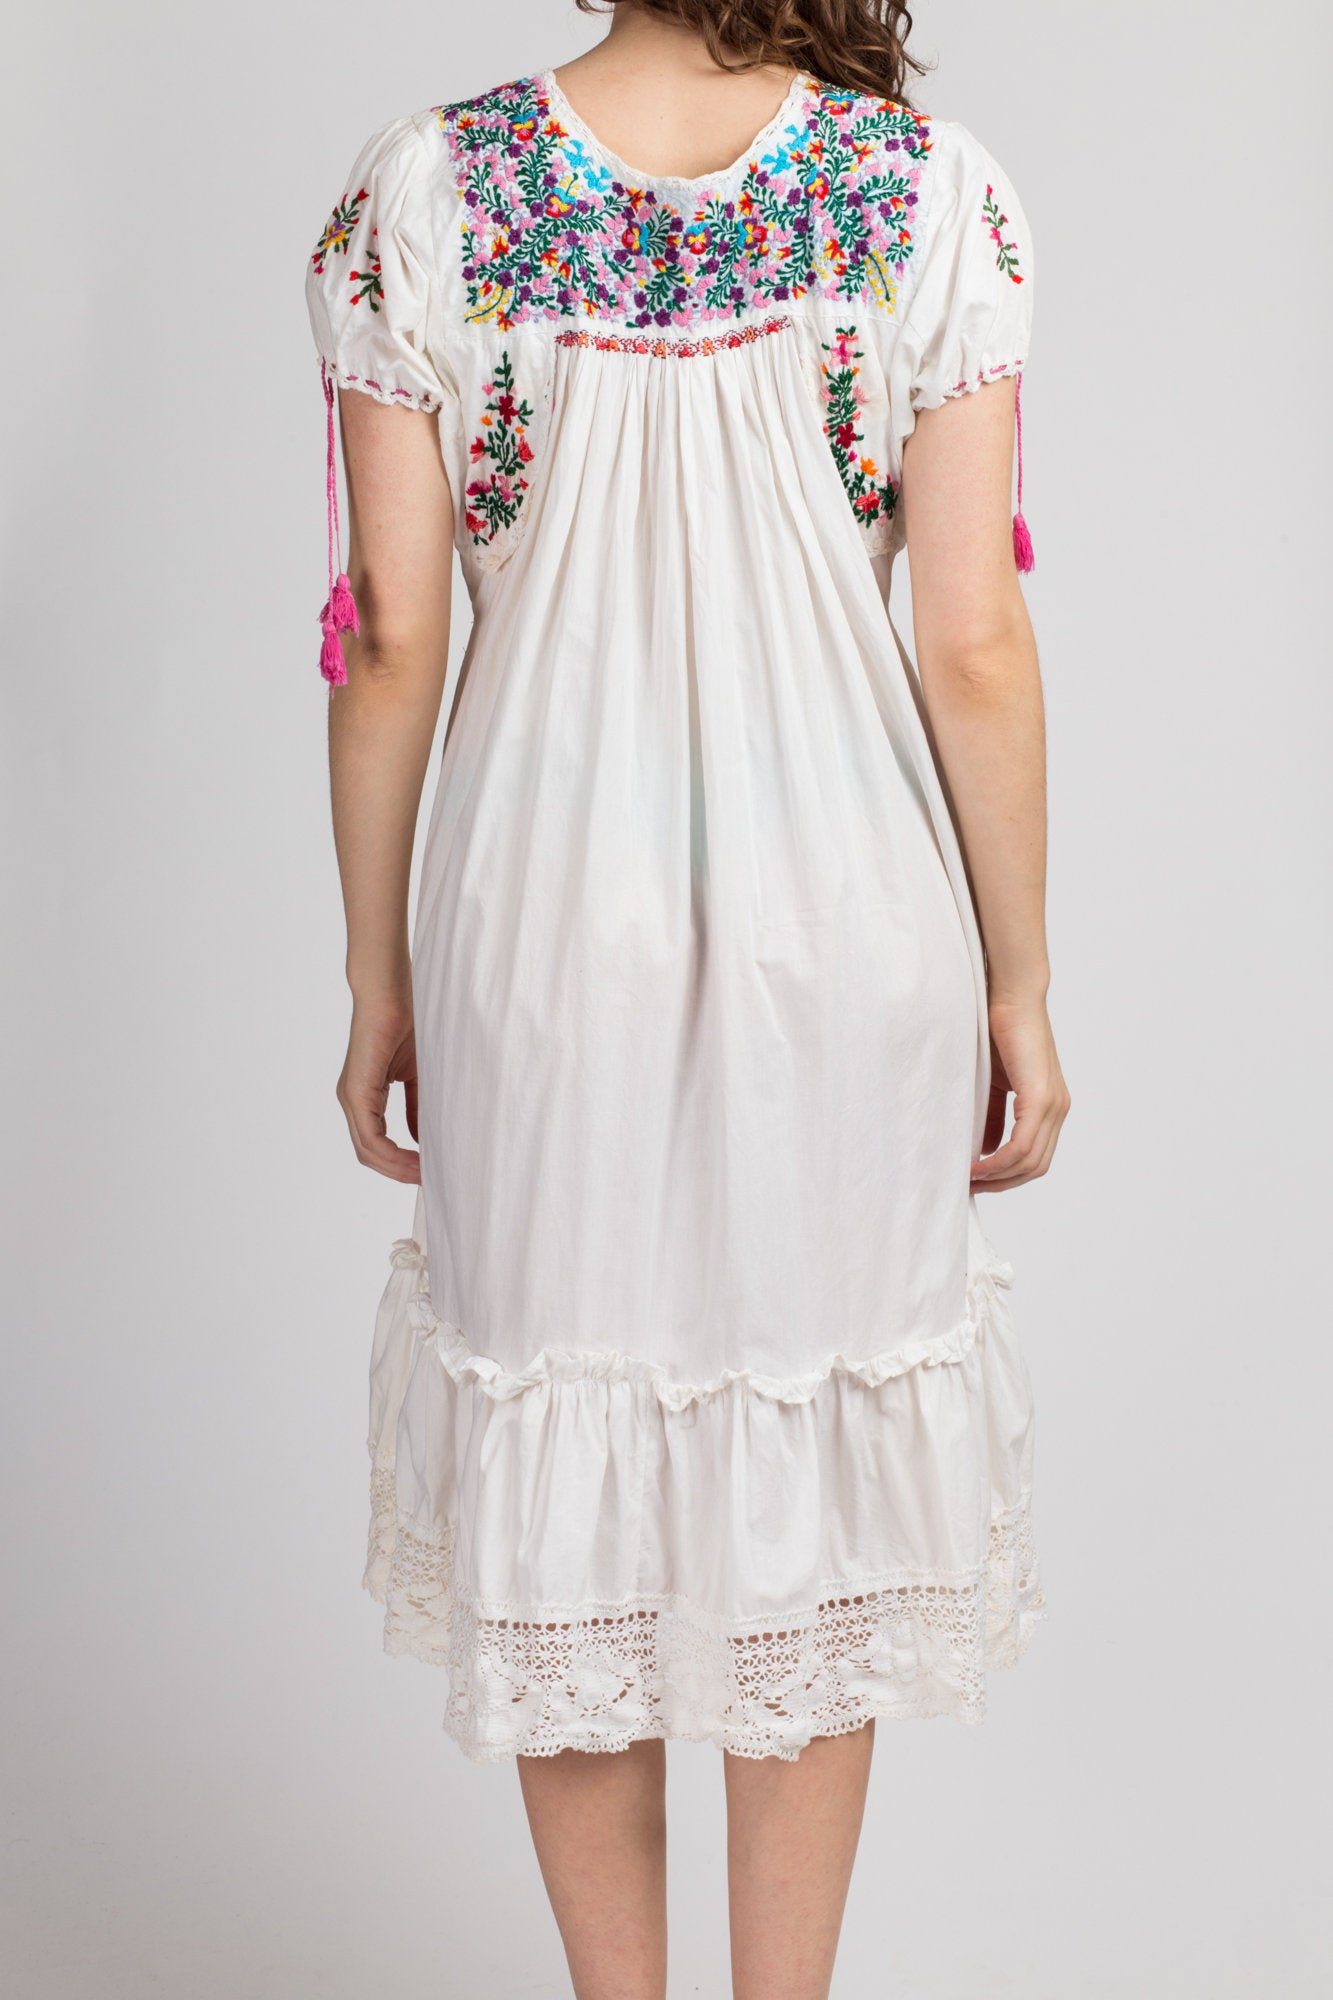 70s Oaxacan Embroidered Mexican Dress - Medium